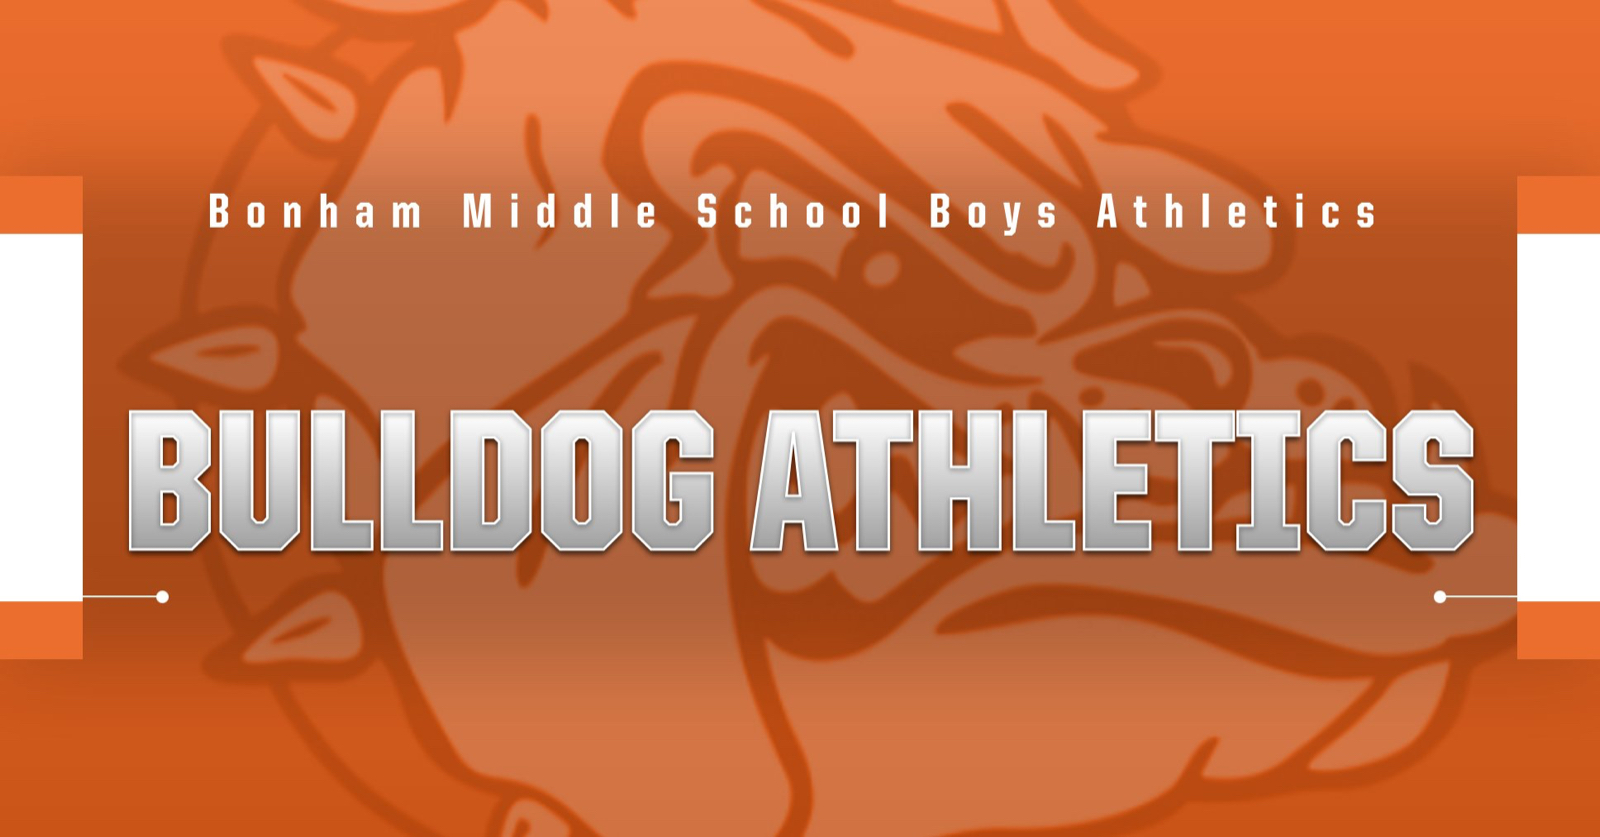 2019-20 Bonham Boys Athletics Awards